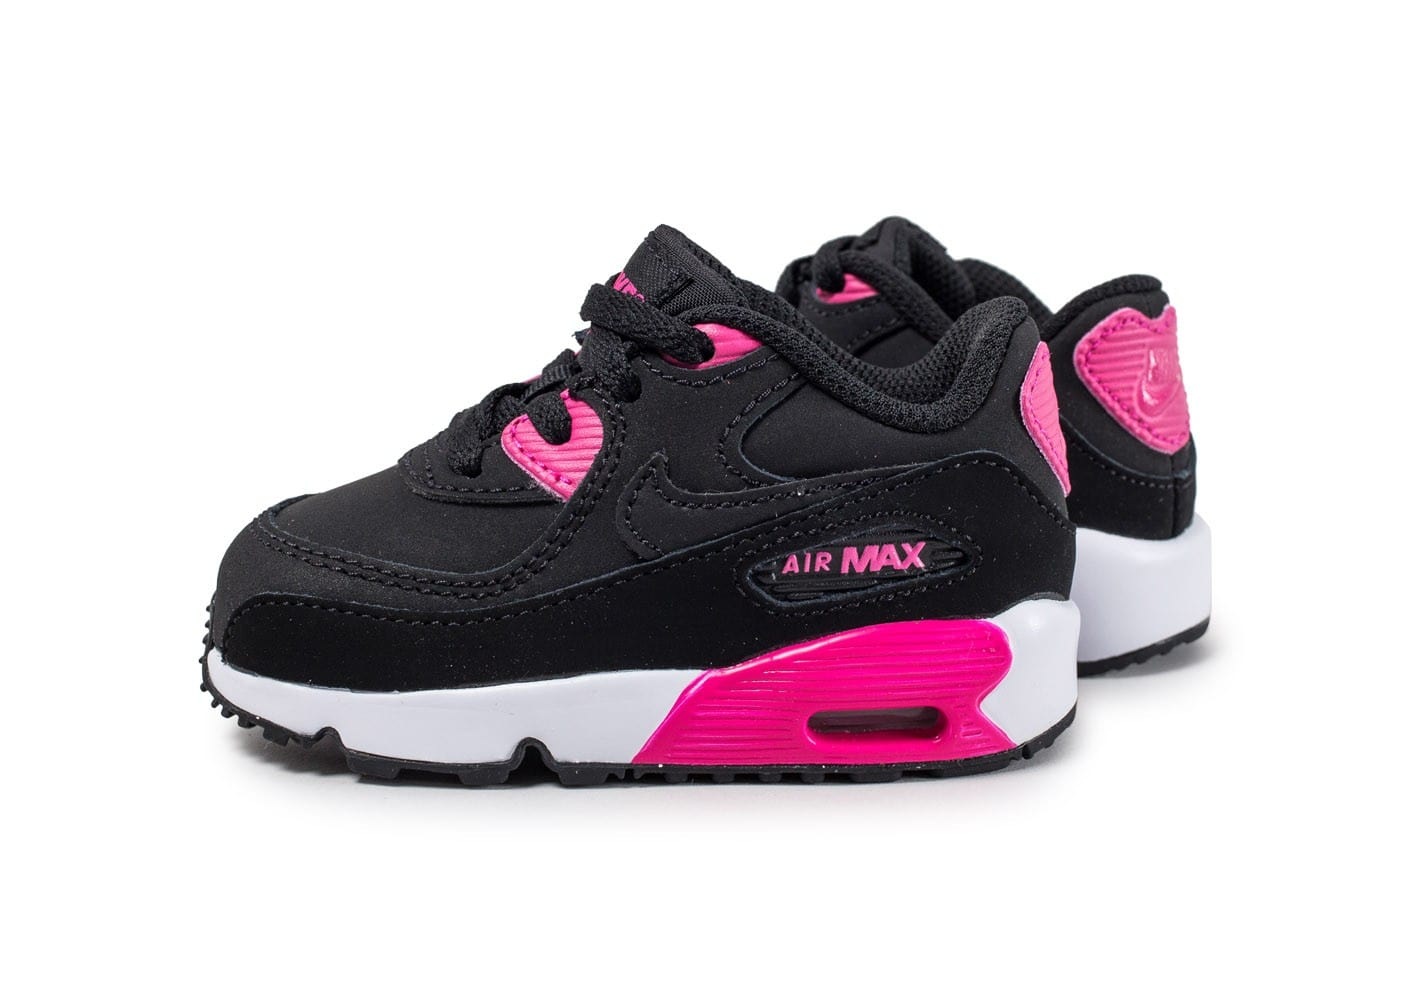 nike air max 90 b b noire et rose chaussures enfant chausport. Black Bedroom Furniture Sets. Home Design Ideas